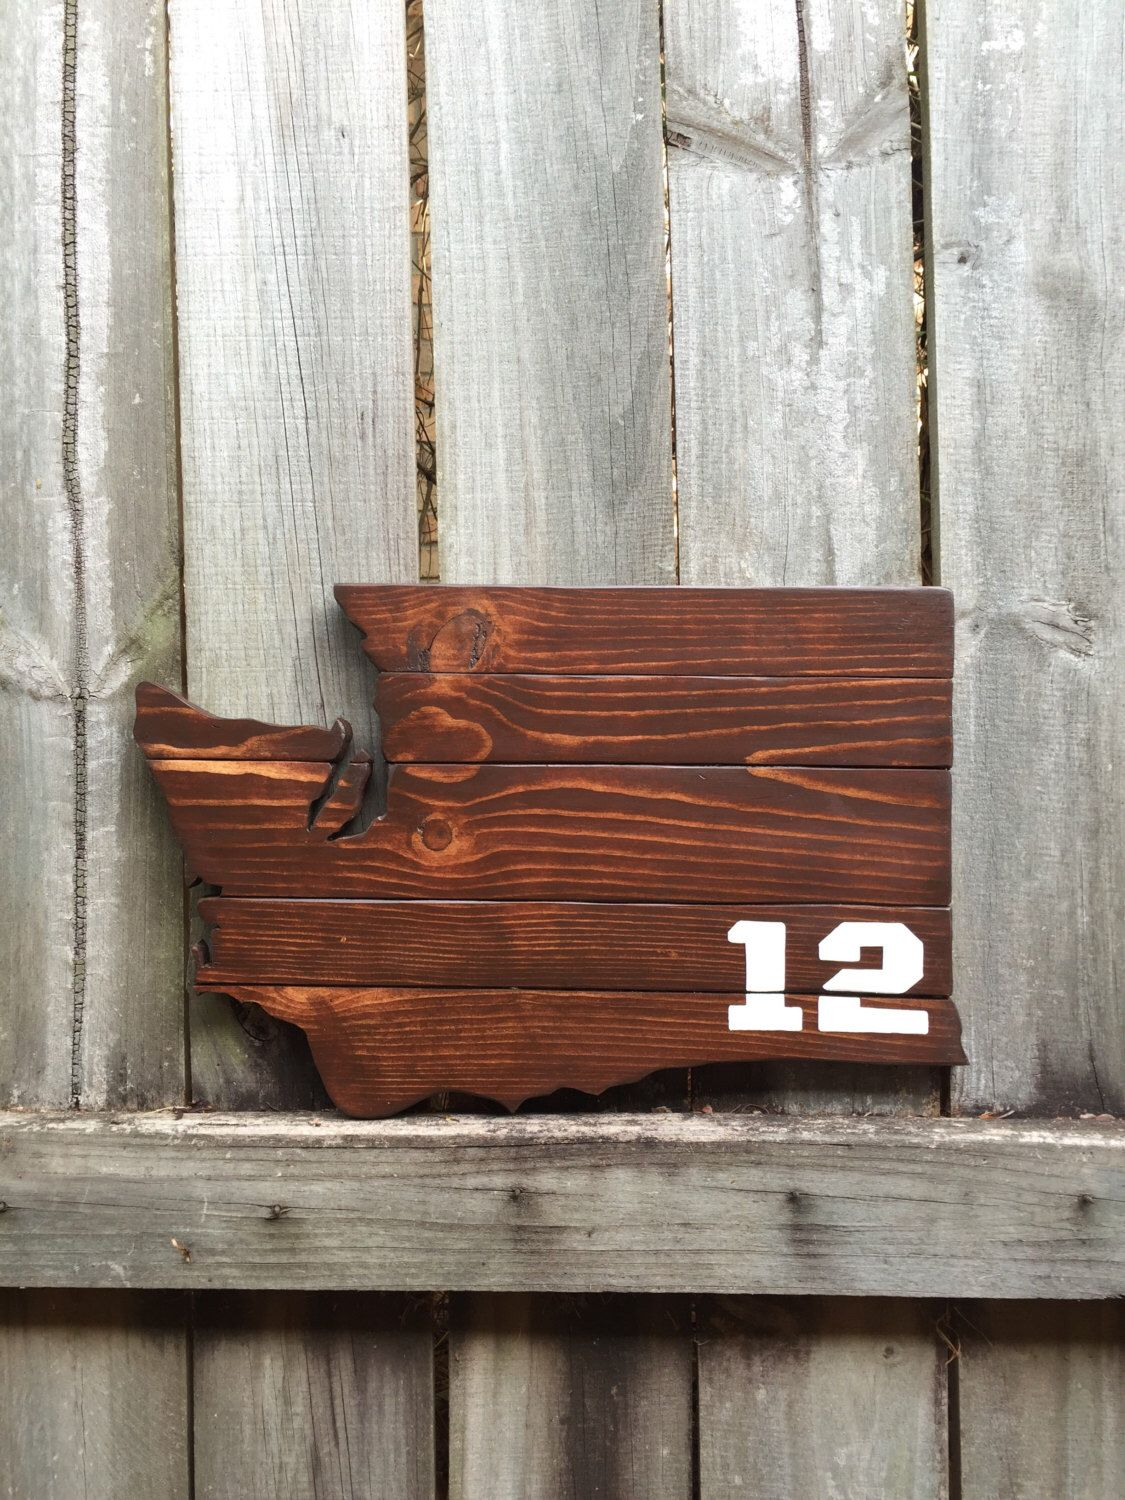 Rustic home decorwedding giftschristmas giftsgifts for boyfriend